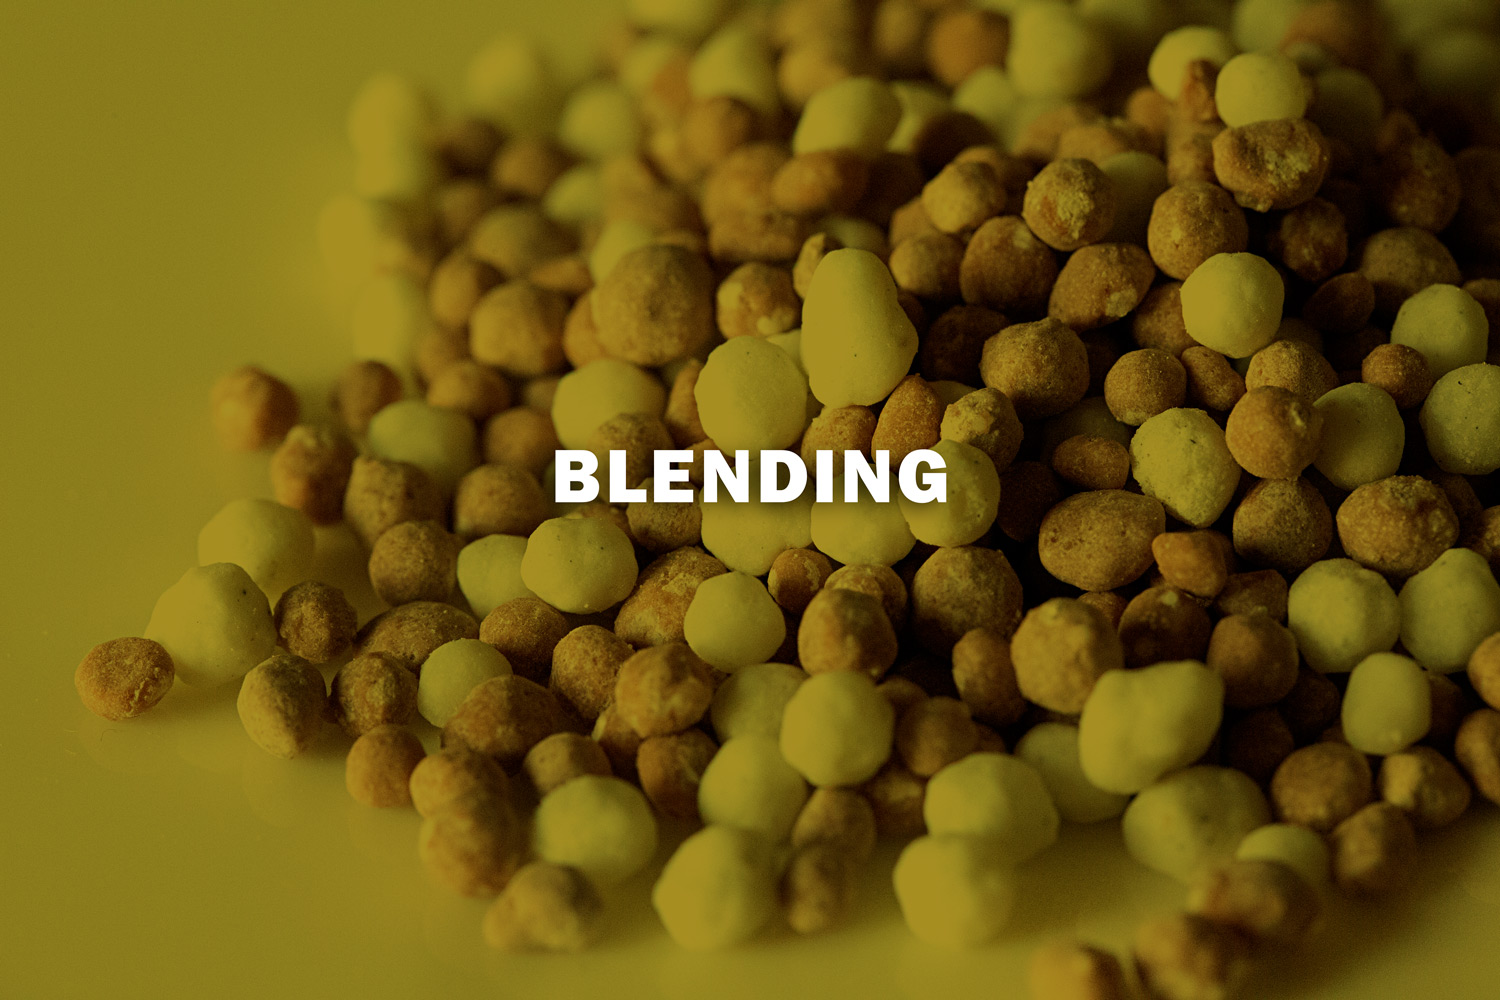 - Blended fertilizers are physical mixtures of different raw materials, without a chemical reaction, but which contain two or three main nutrients in their composition.